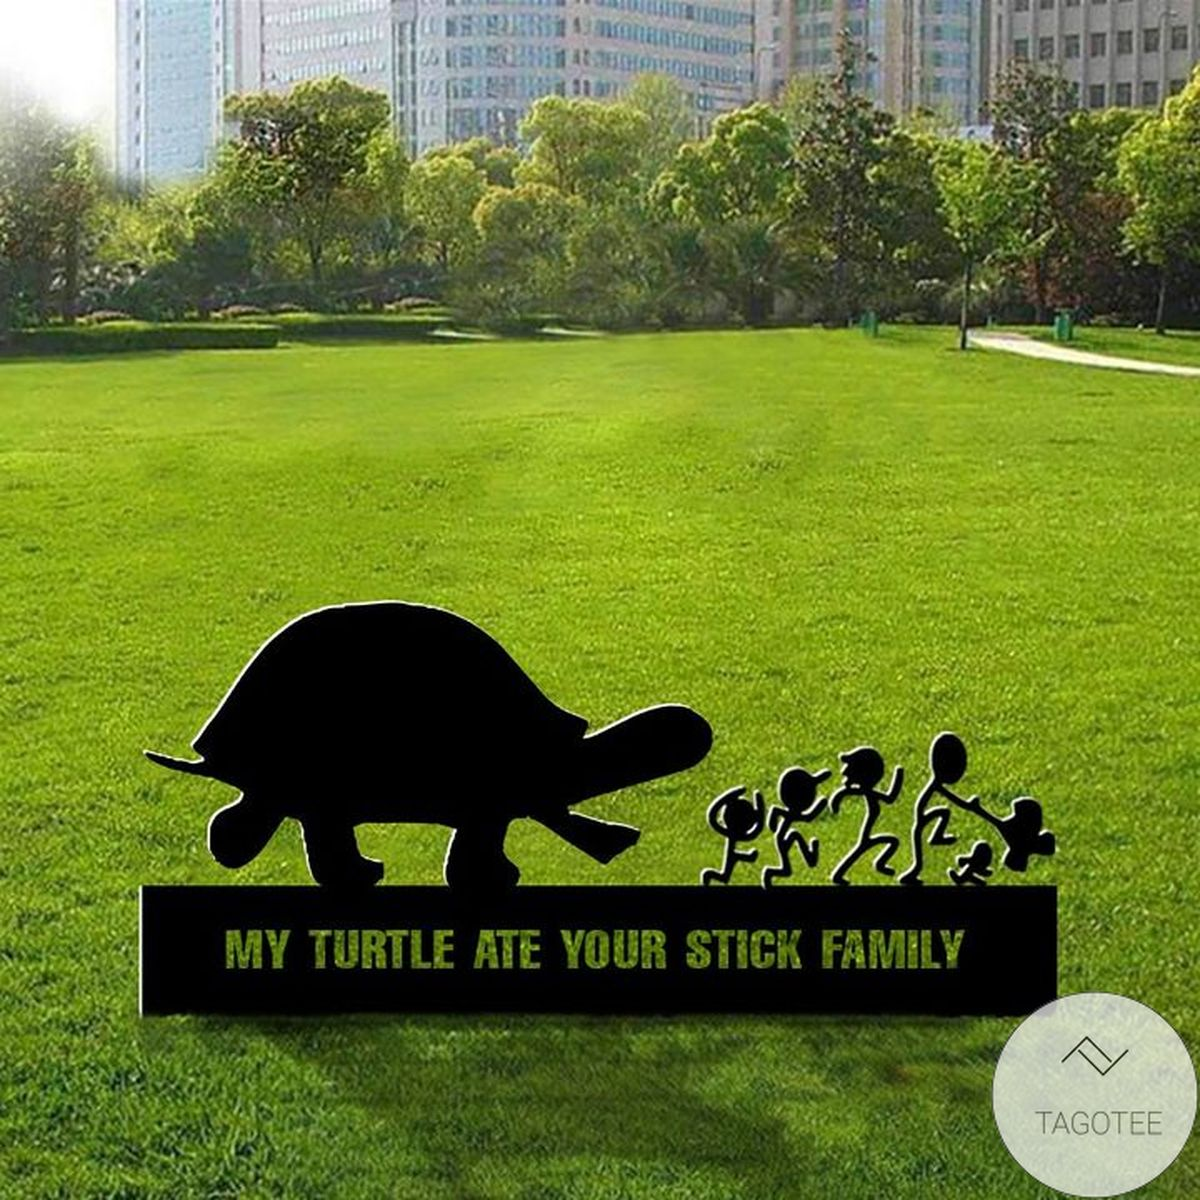 My Turtle Ate Your Stick Family Yard Sign